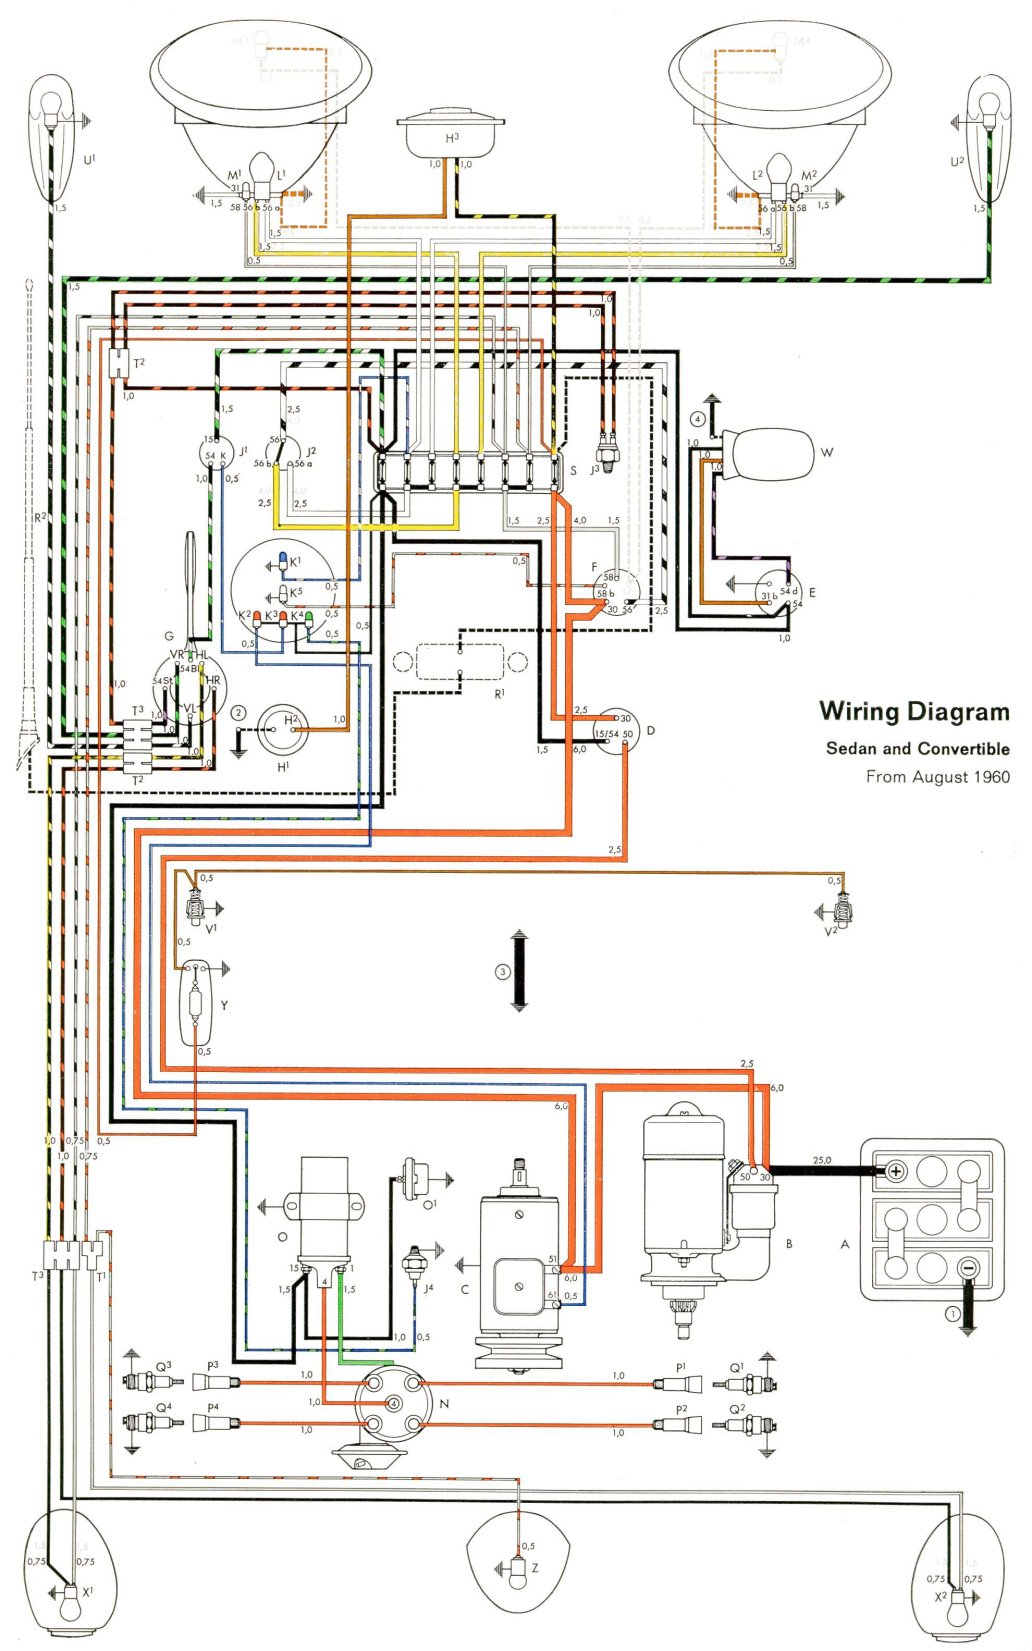 bug_61 1961 beetle wiring diagram thegoldenbug com vw alternator wiring diagram at nearapp.co